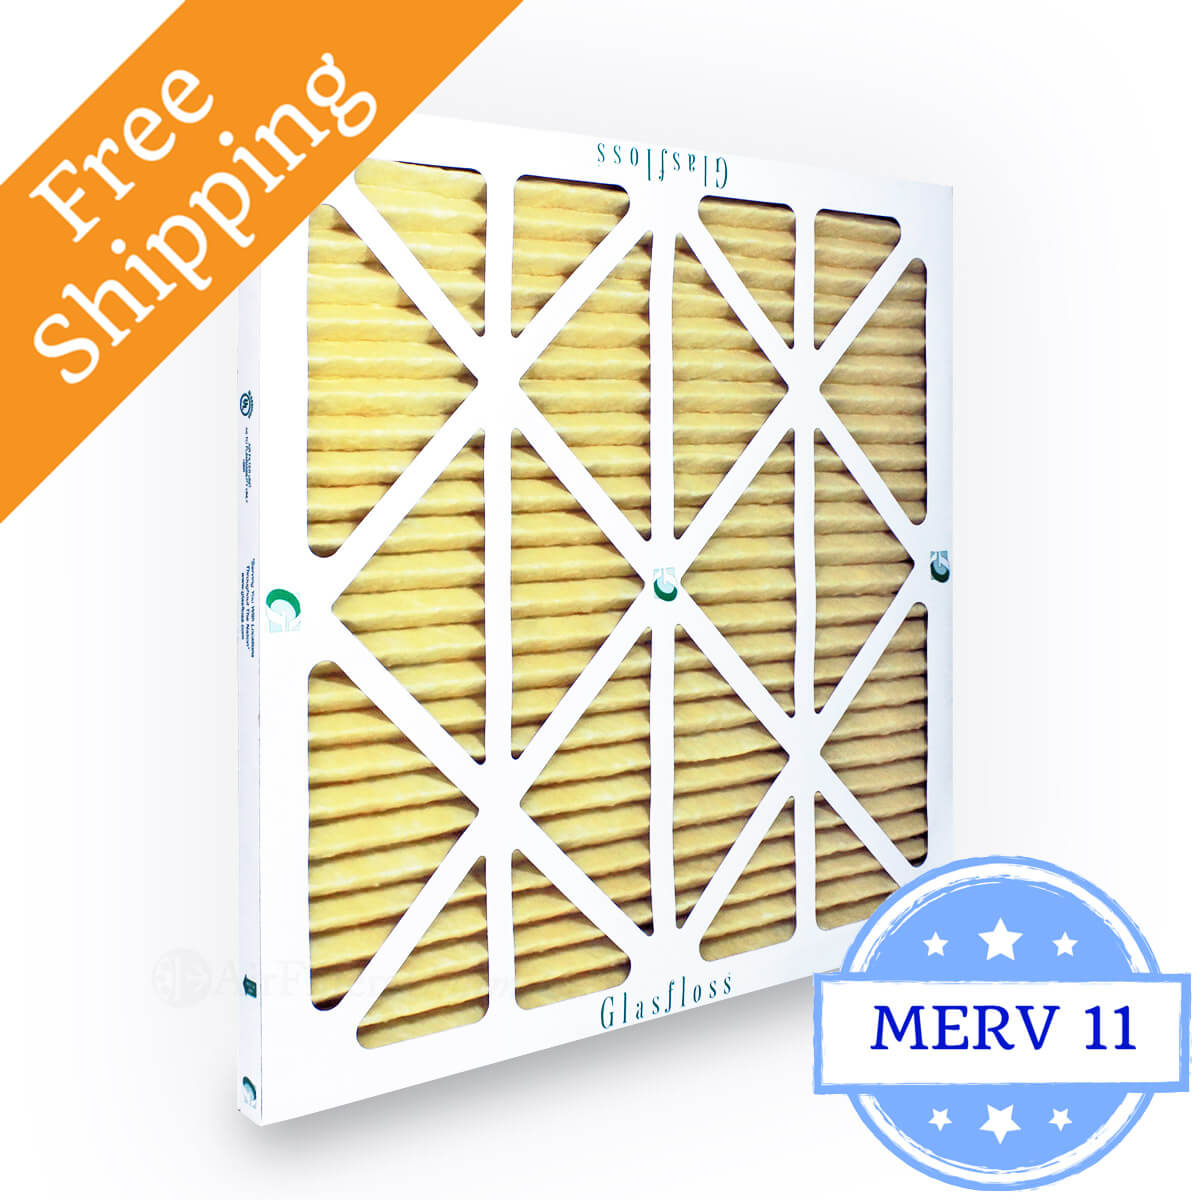 Glasfloss 25x25x1 Air Filter MR-11 Series